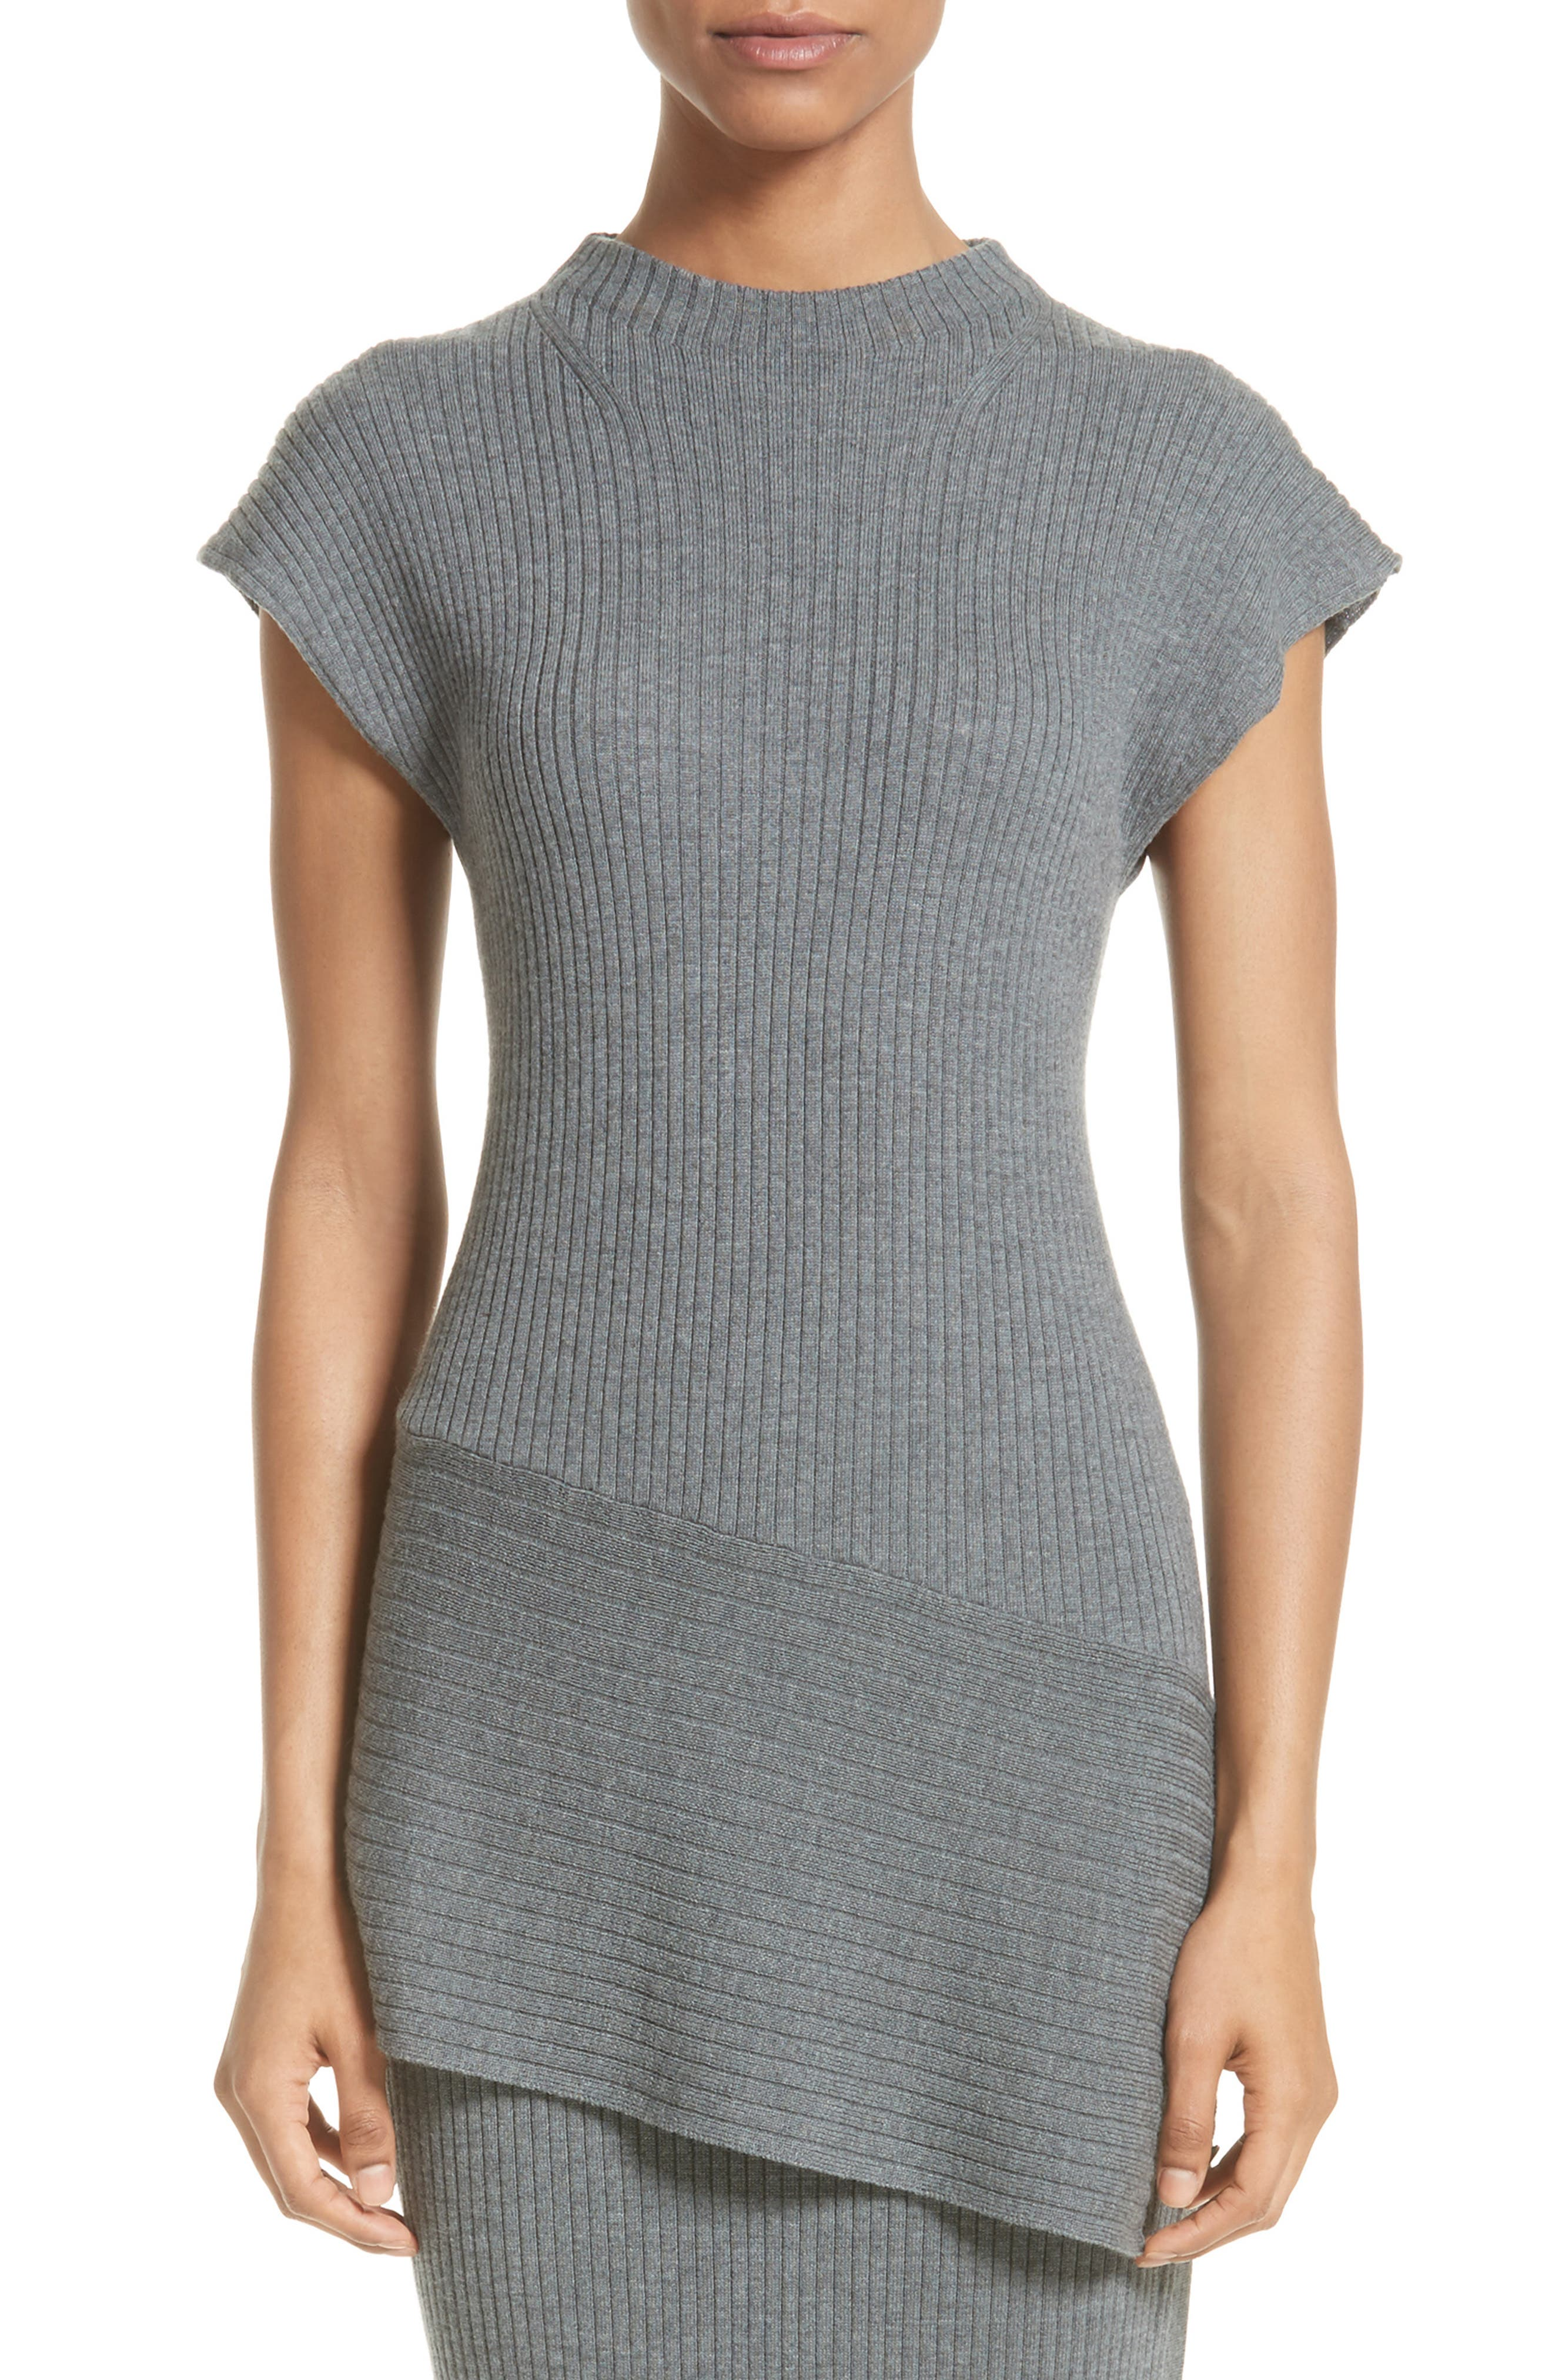 Main Image - St. John Collection Asymmetrical Rib Knit Top